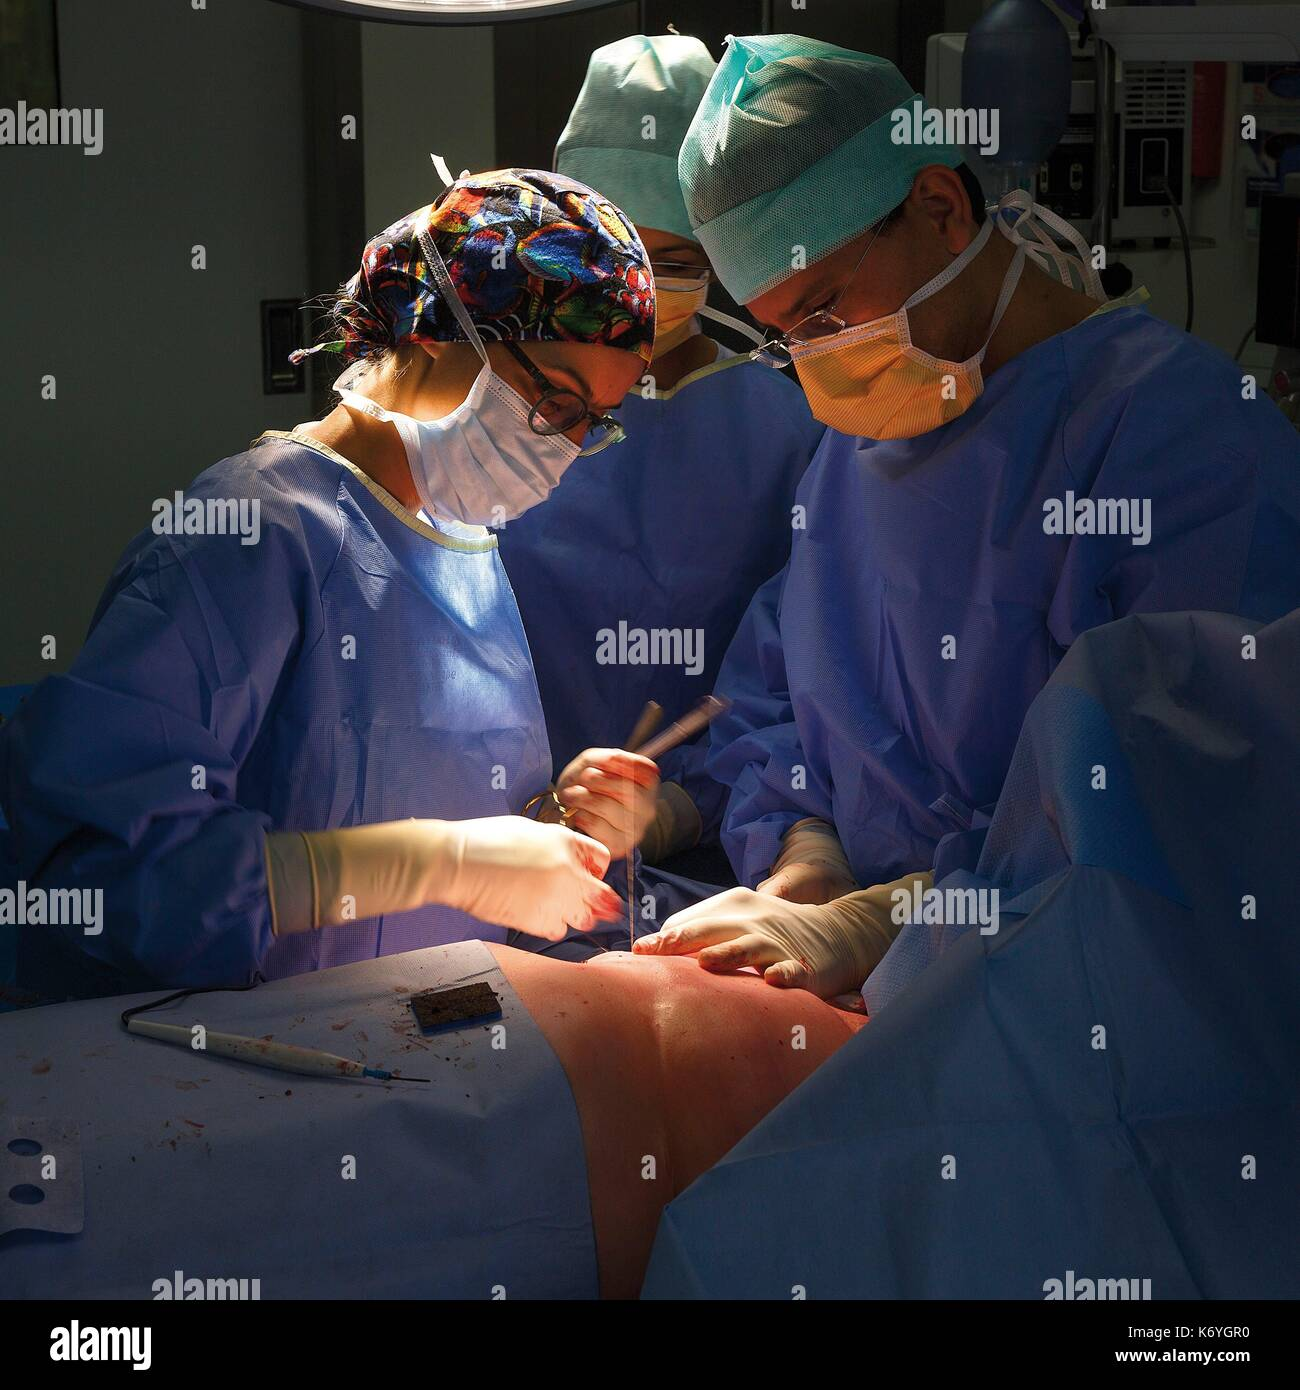 France, Haute Garonne, Toulouse, listed at Great Tourist Sites in Midi Pyrenees, Oncopole, University Institute of Cancerology of Toulouse, IUCT, surgical operation in an operating theater - Stock Image